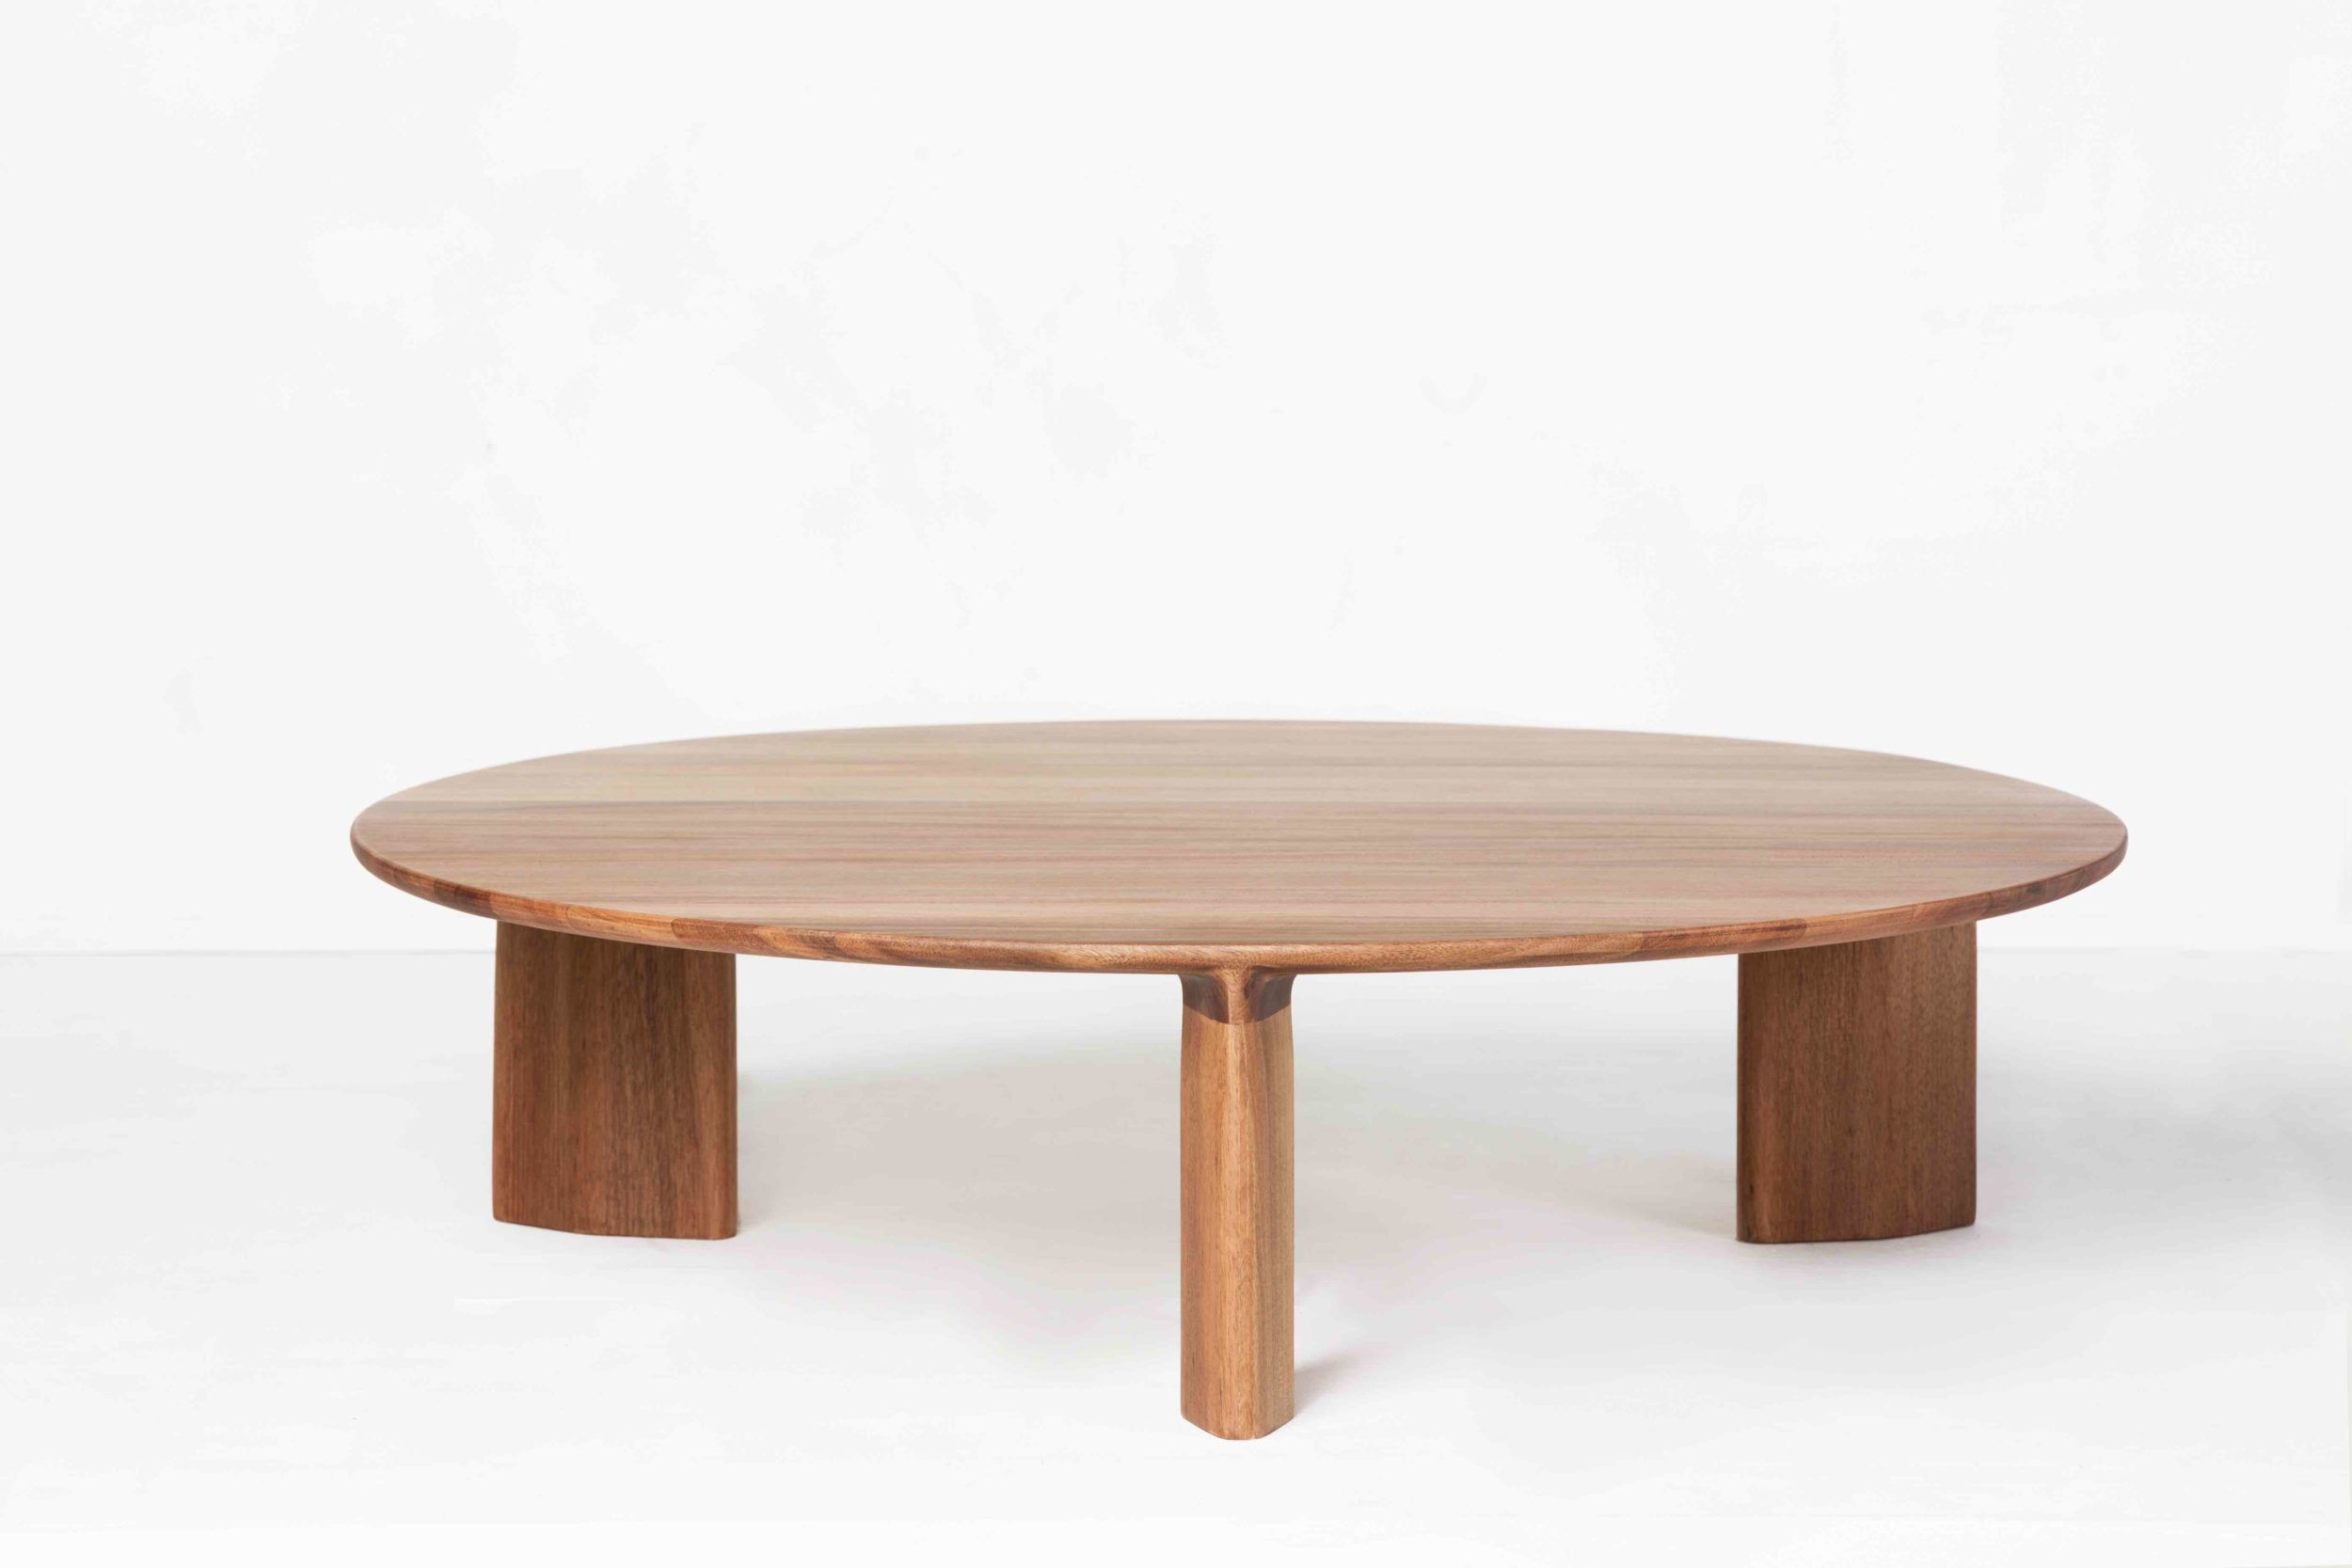 Large Wood Coffee Table To Contrast The Other Materials In The Living Room